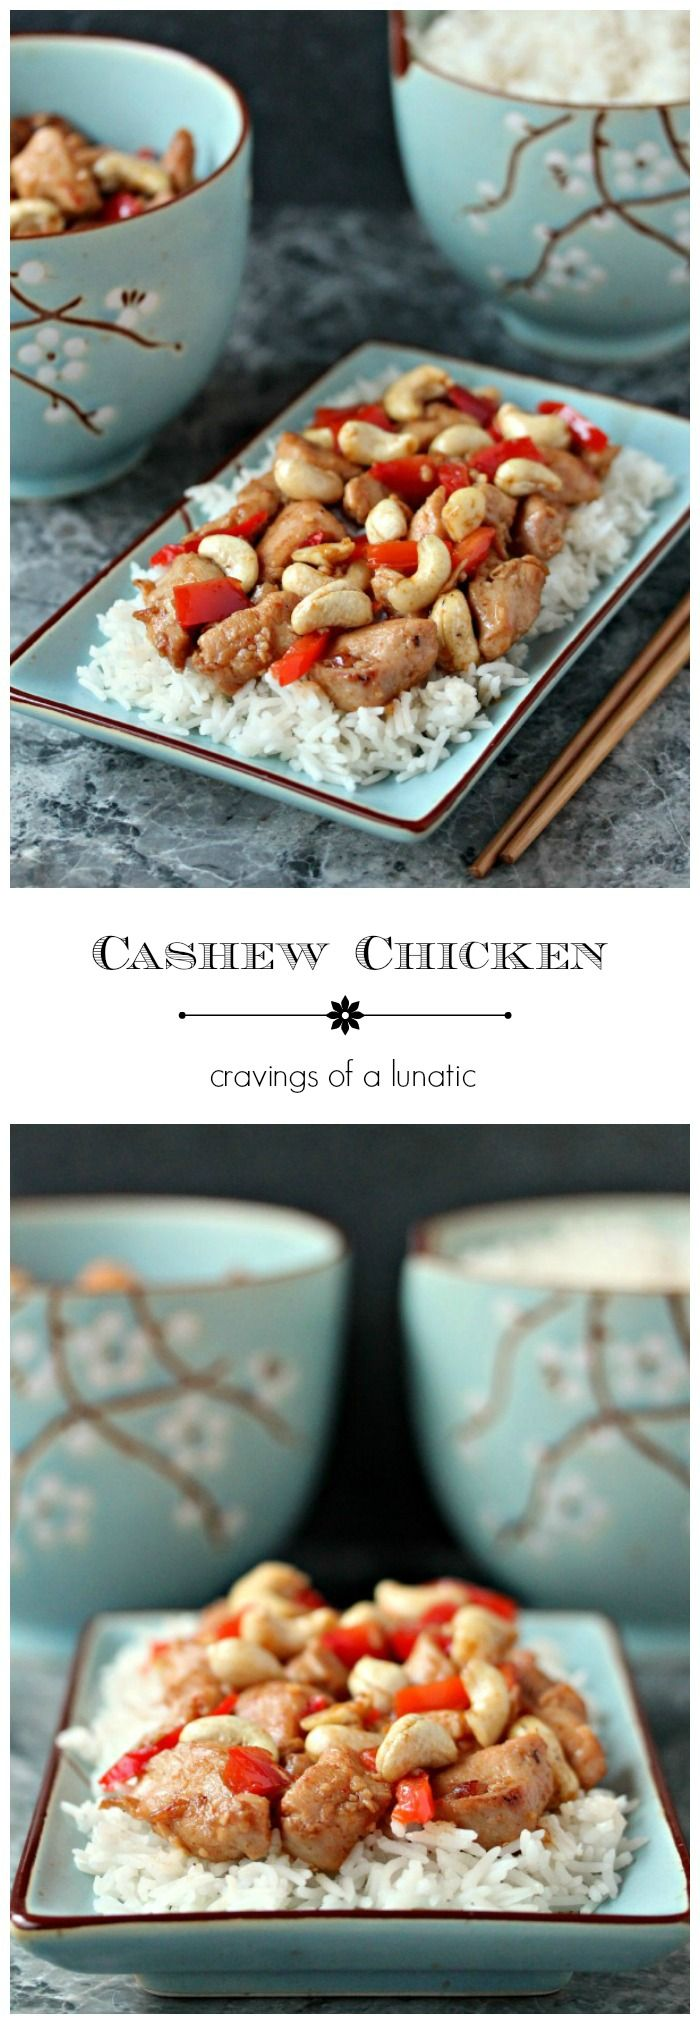 Creamy Cashew Chicken from cravingsofalunatic.com- This recipe is quick, easy and sure to be a hit with your family and friends. Enjoy! (@CravingsLunatic)